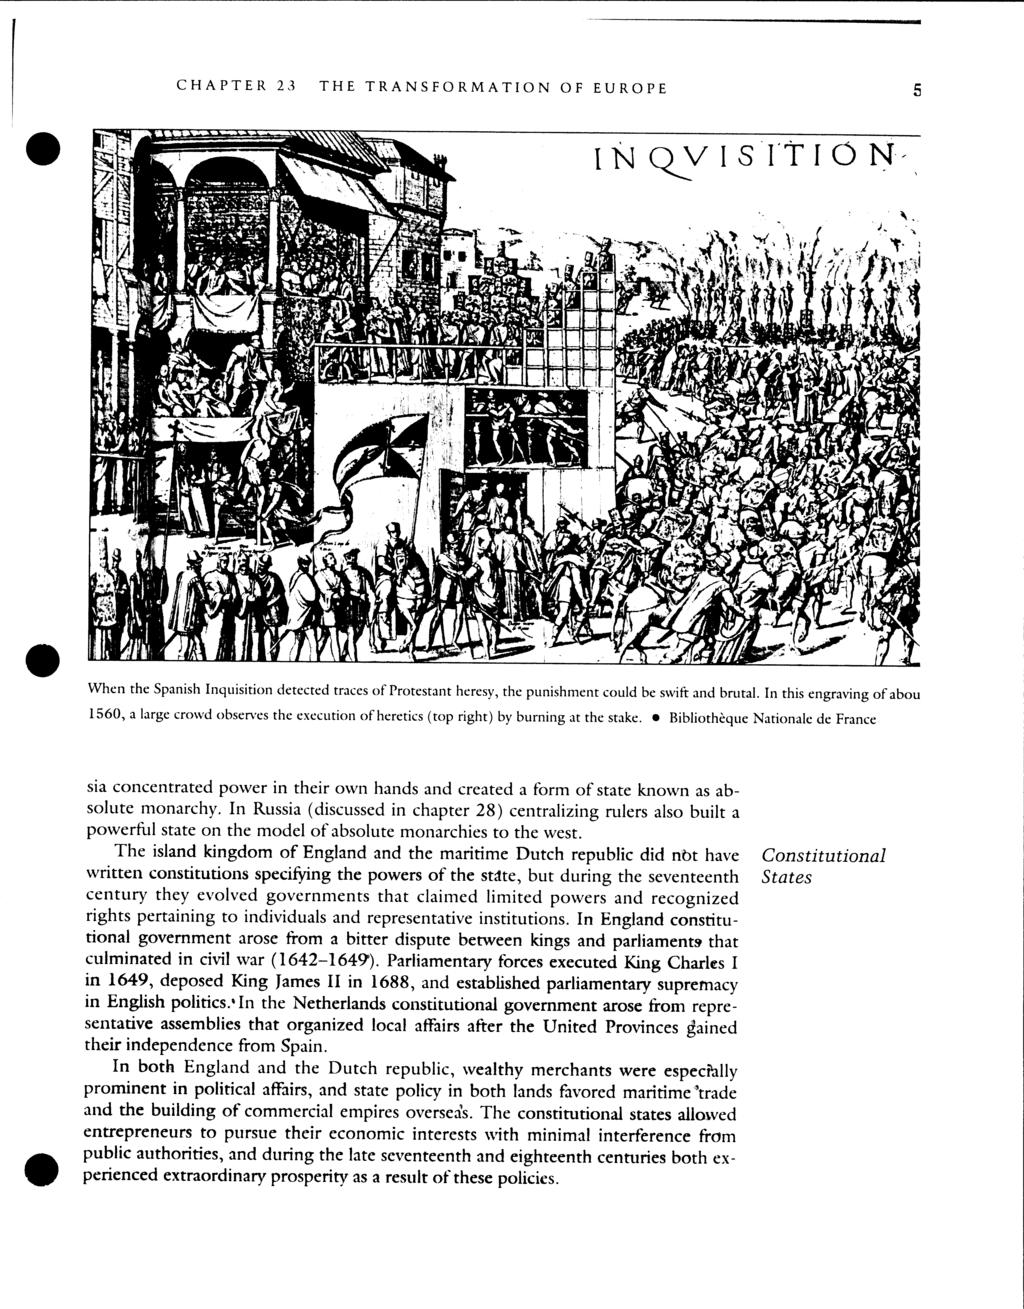 CHAPTER 23 THE TRANSFORMATION OF EUROPE 5 When the Spanish Inquisition detected traces of Protestant heresy, the punishment could be swift and brutal.